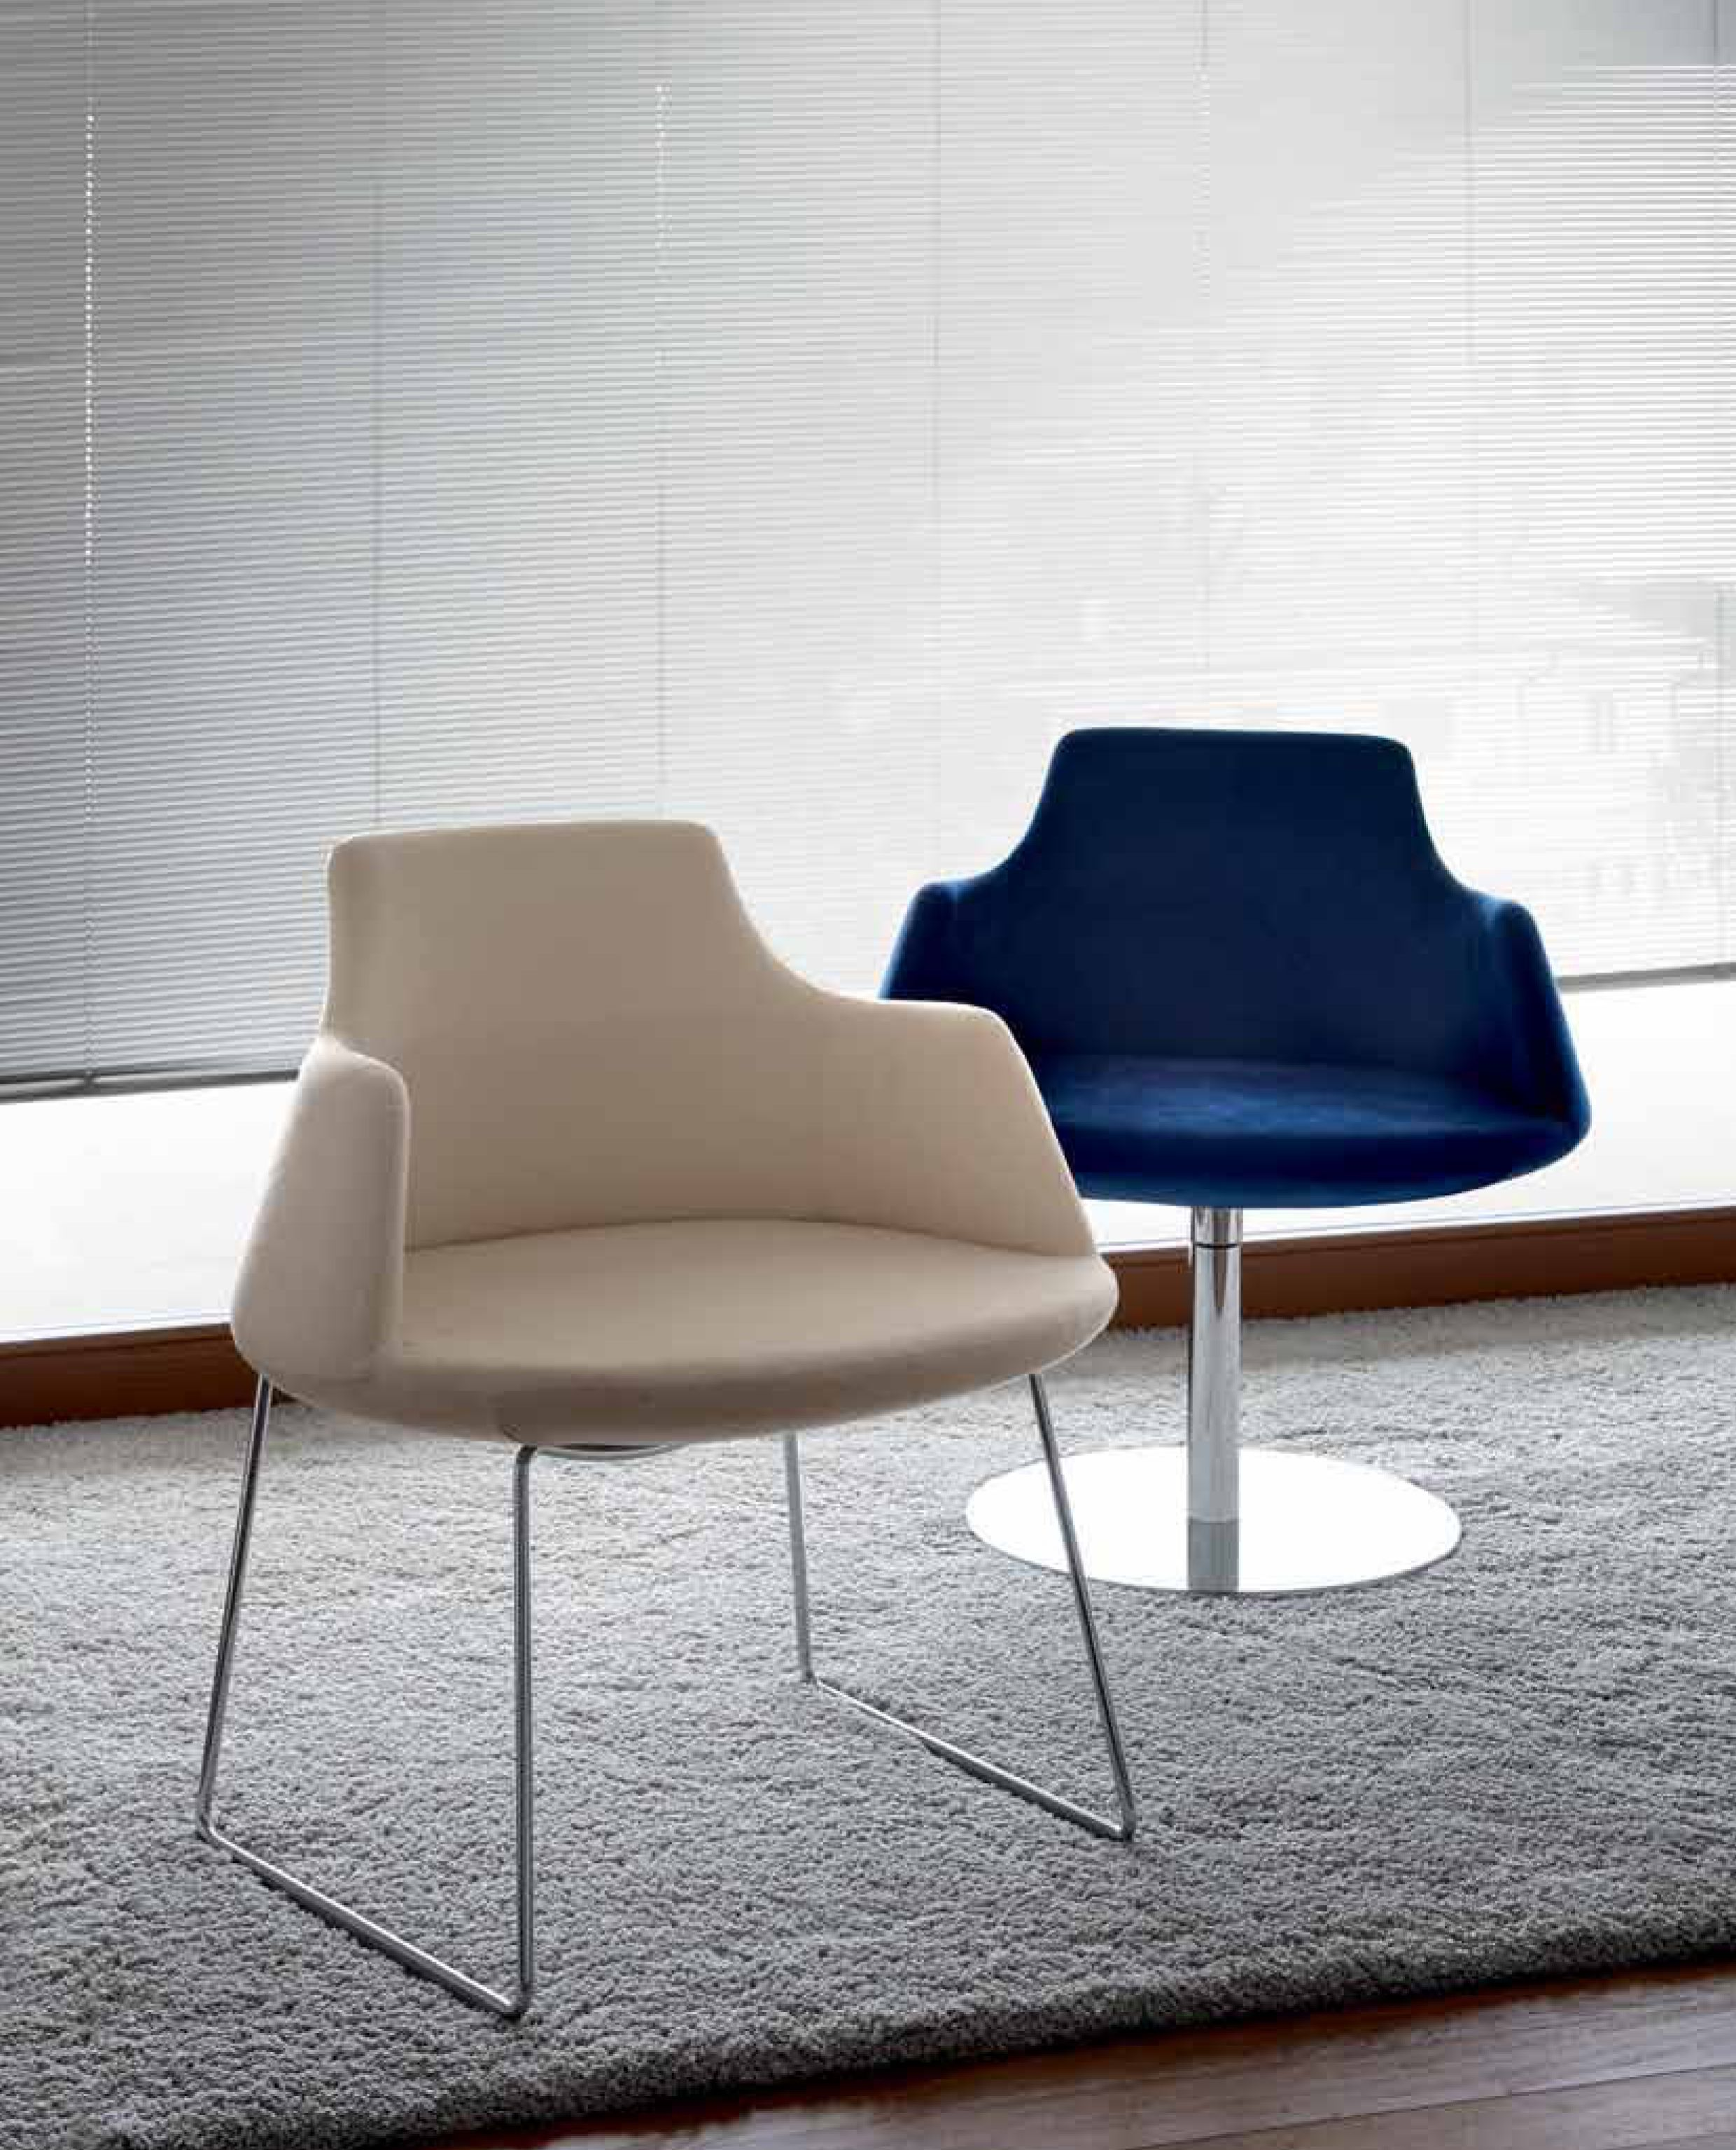 Antheia. Upholstered armchair in cream and blue with steel